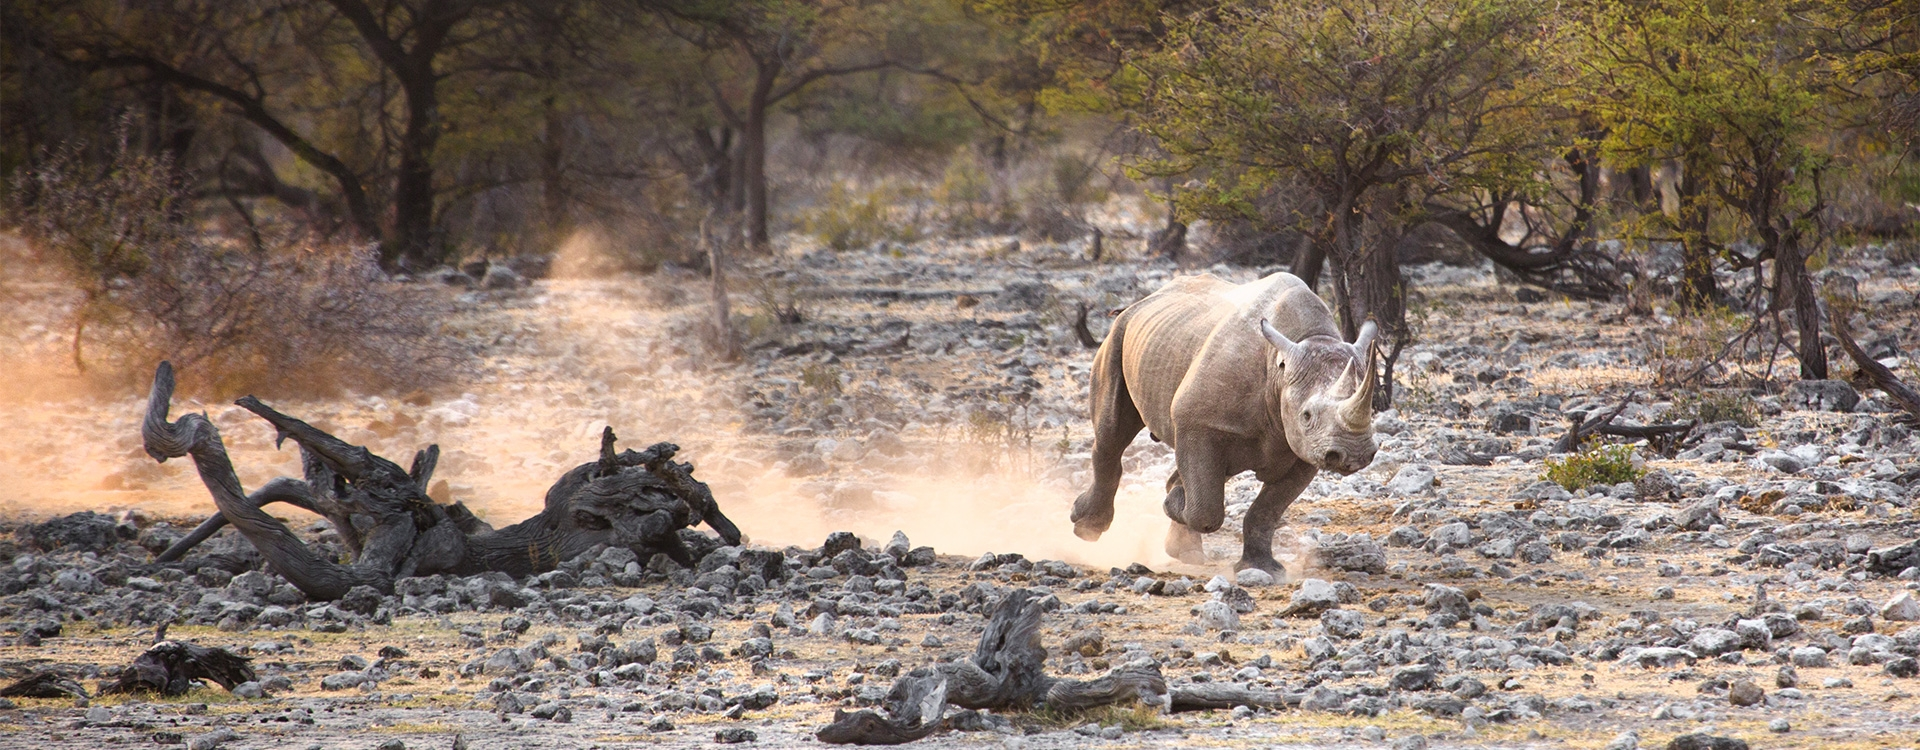 Black rhino population on the rise in Africa / B2